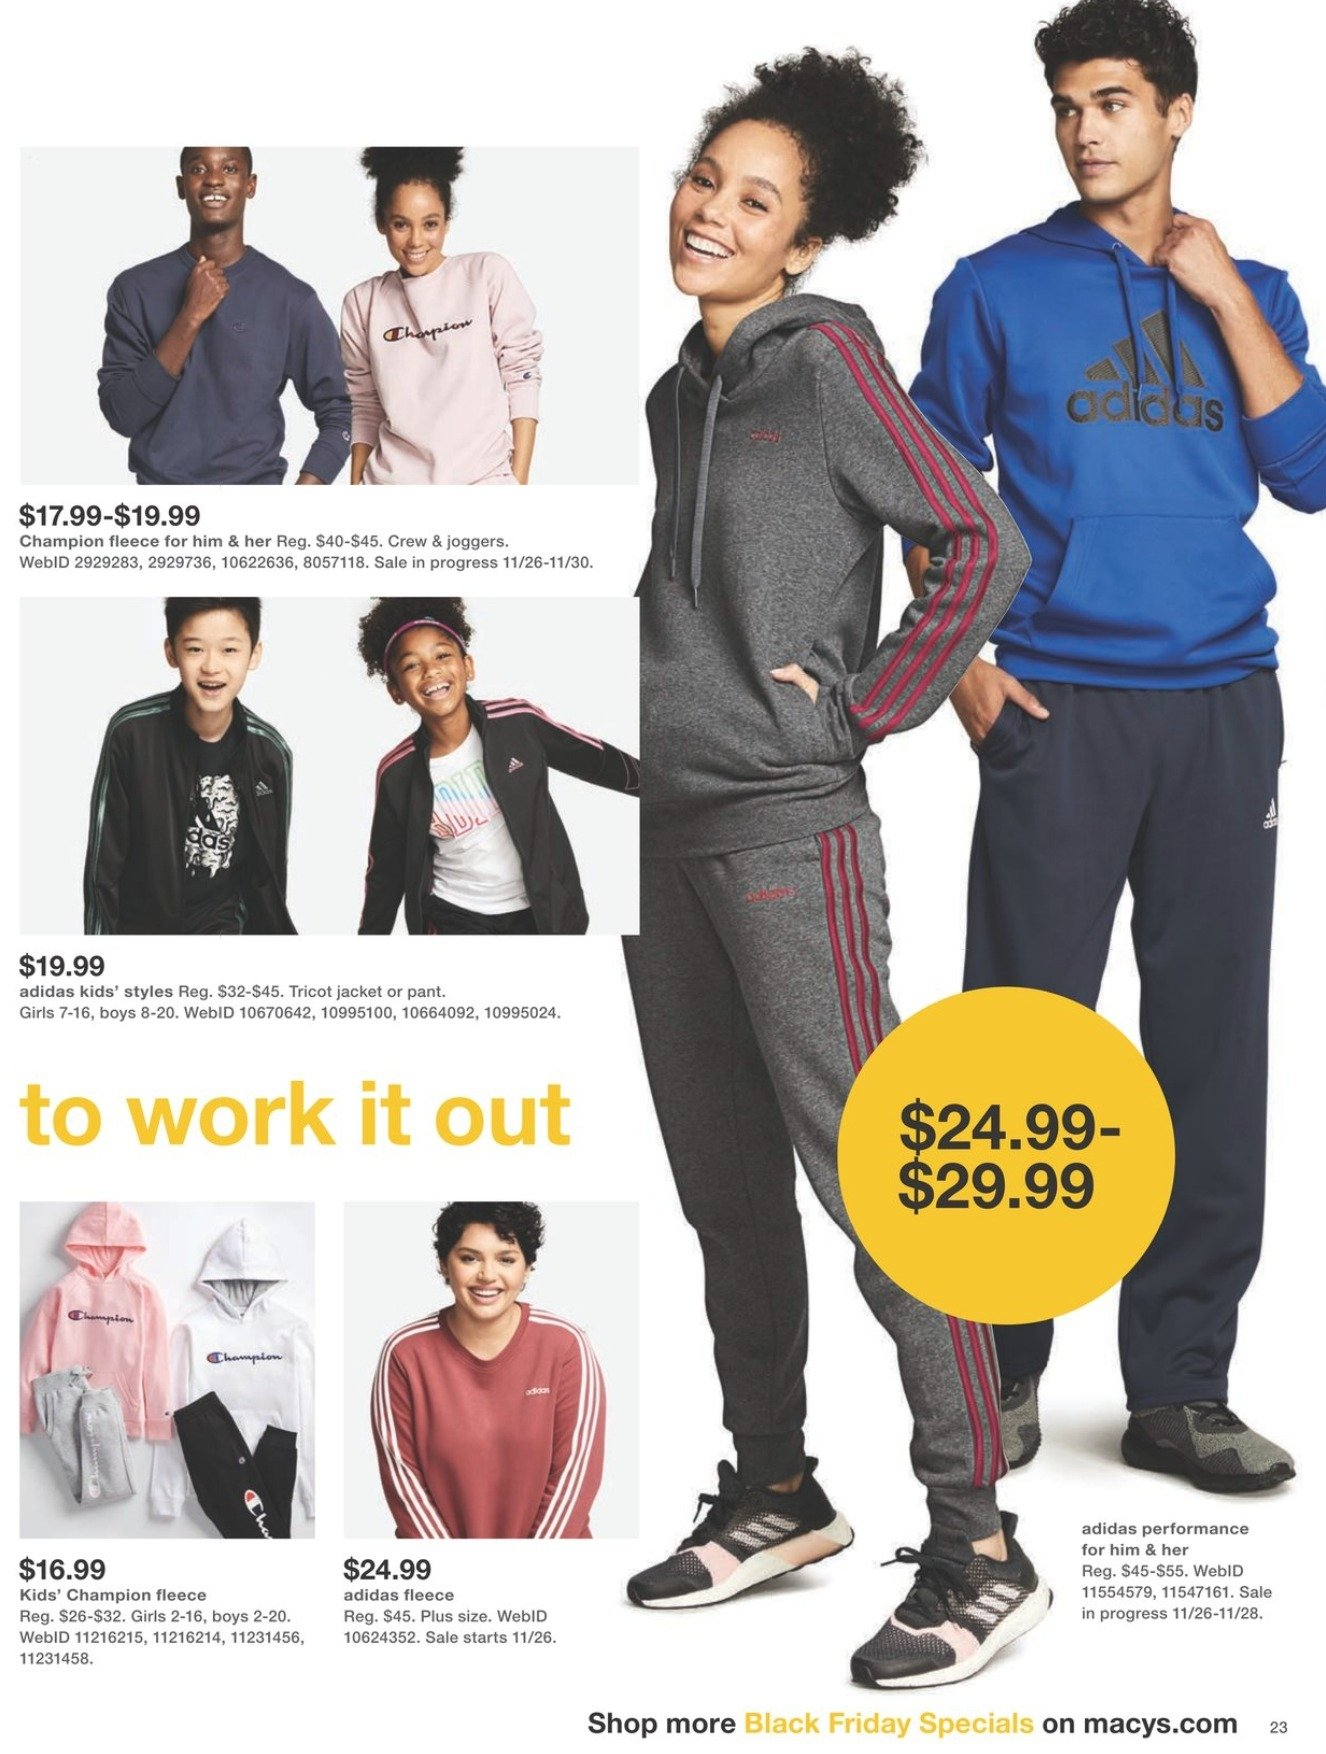 Macy's Black Friday 2020 Page 23